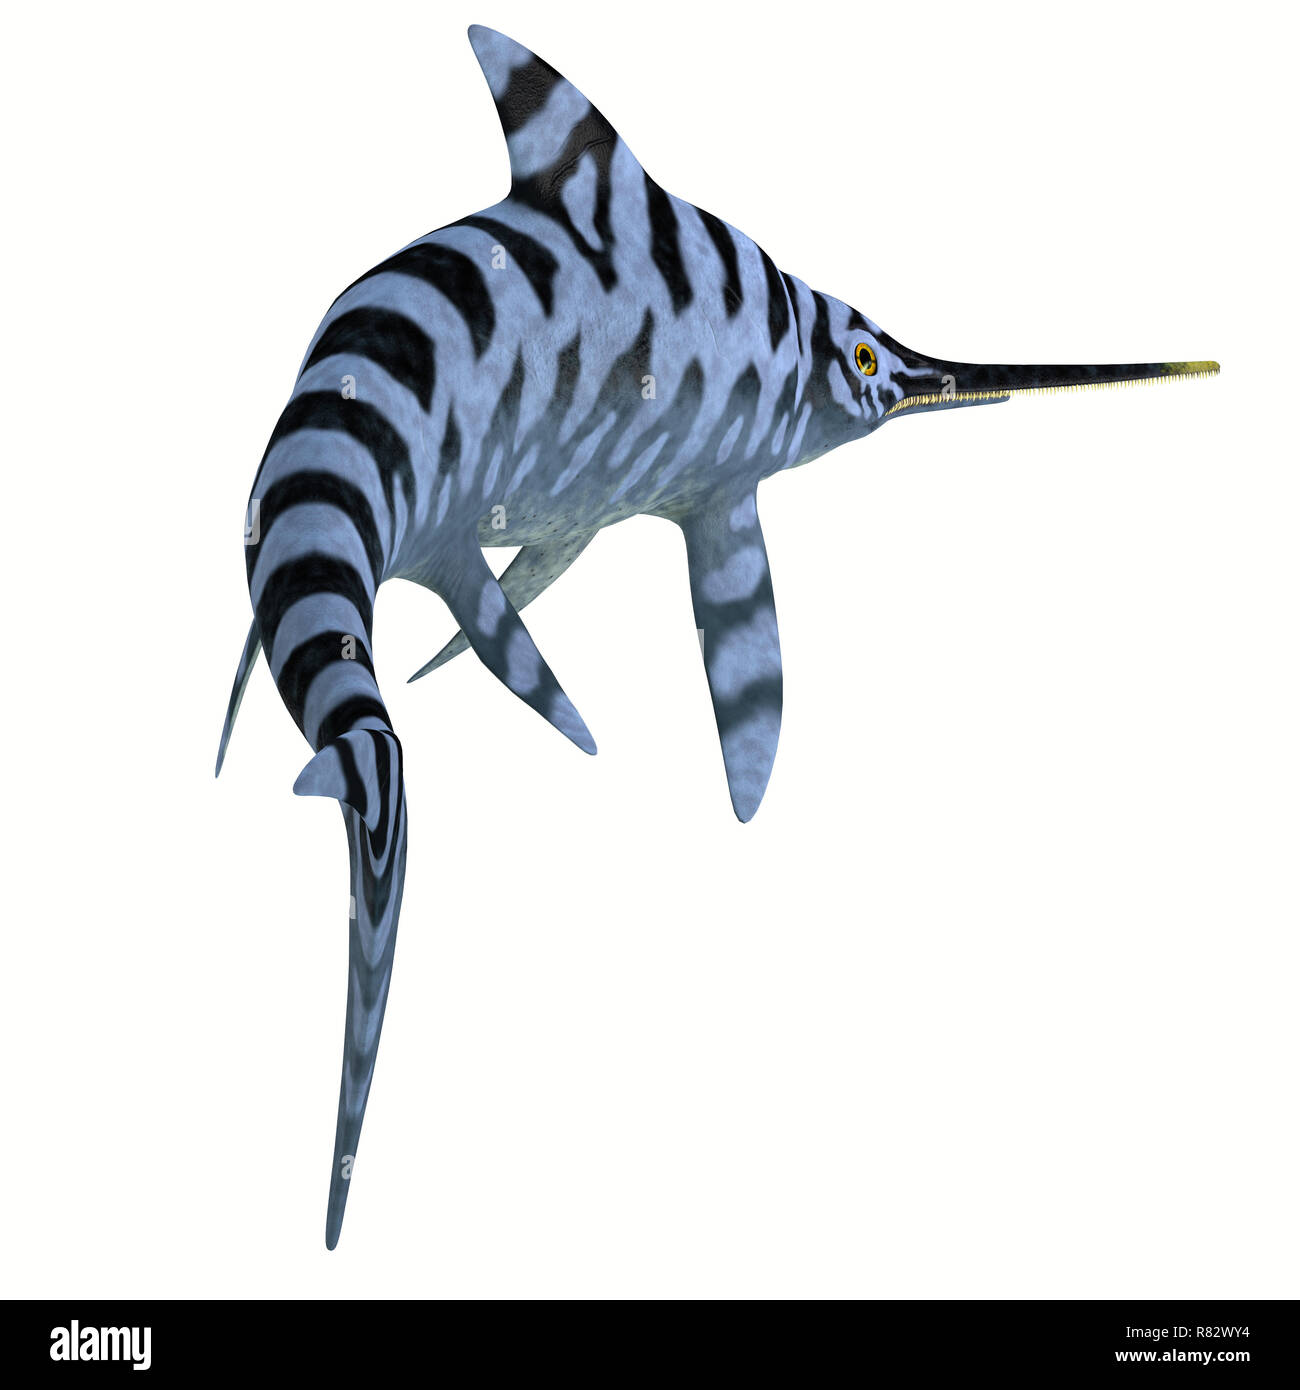 Eurhinosaurus Reptile Stripped Pattern - Eurhinosaurus was a carnivorous Ichthyosaur reptile that lived in Europe during the Jurassic Period. - Stock Image